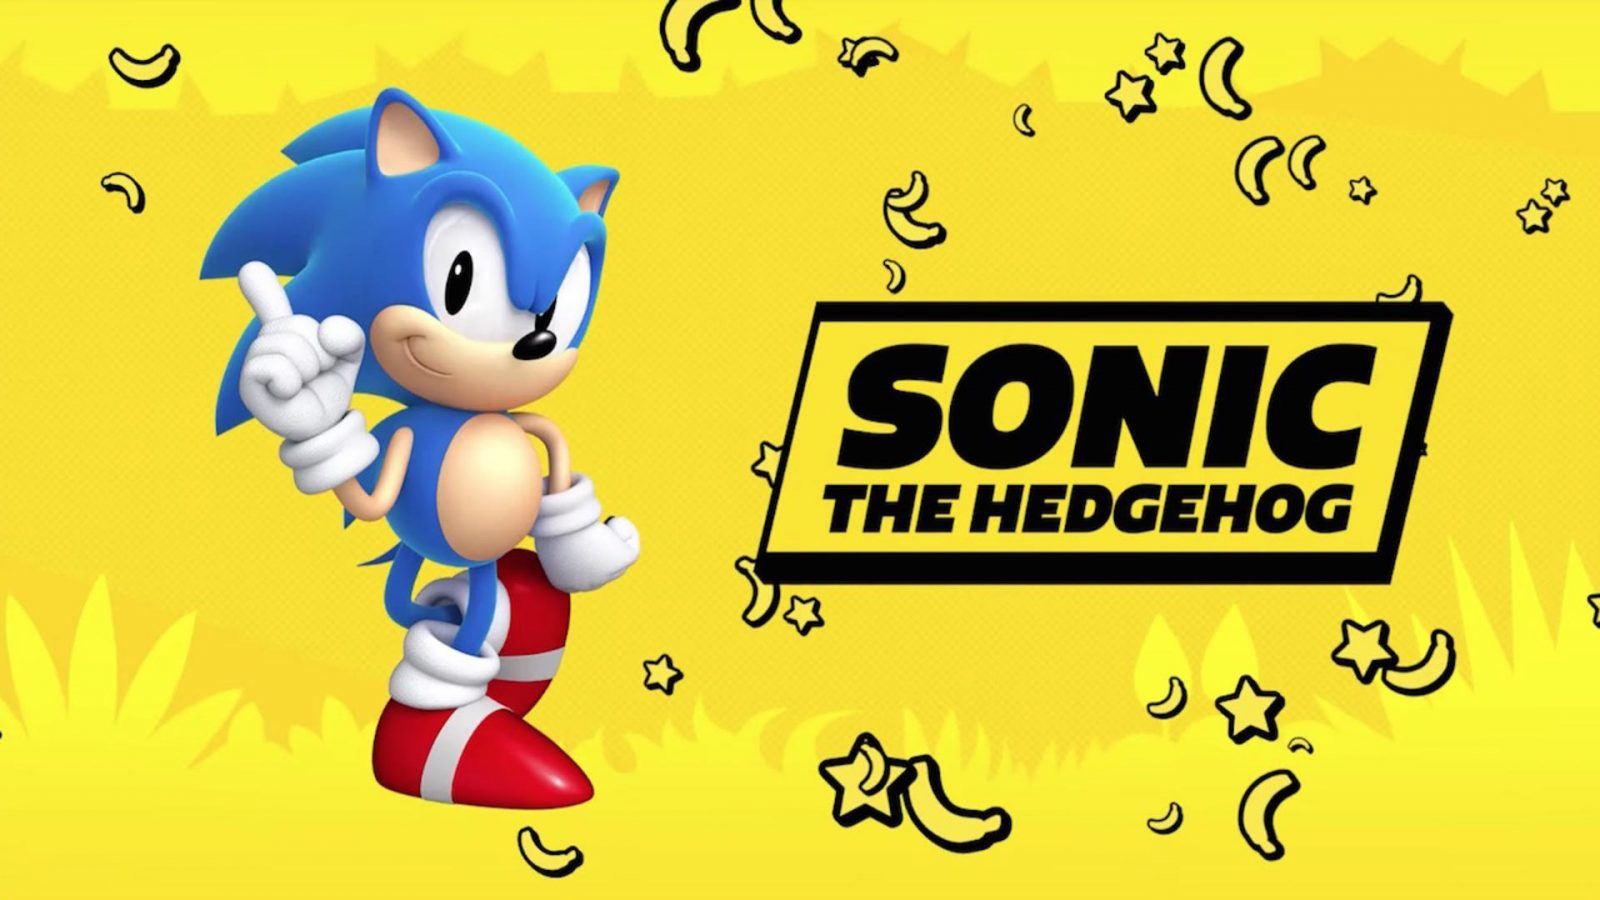 The Good Version of Sonic the Hedgehog Is Coming to Super Monkey Ball